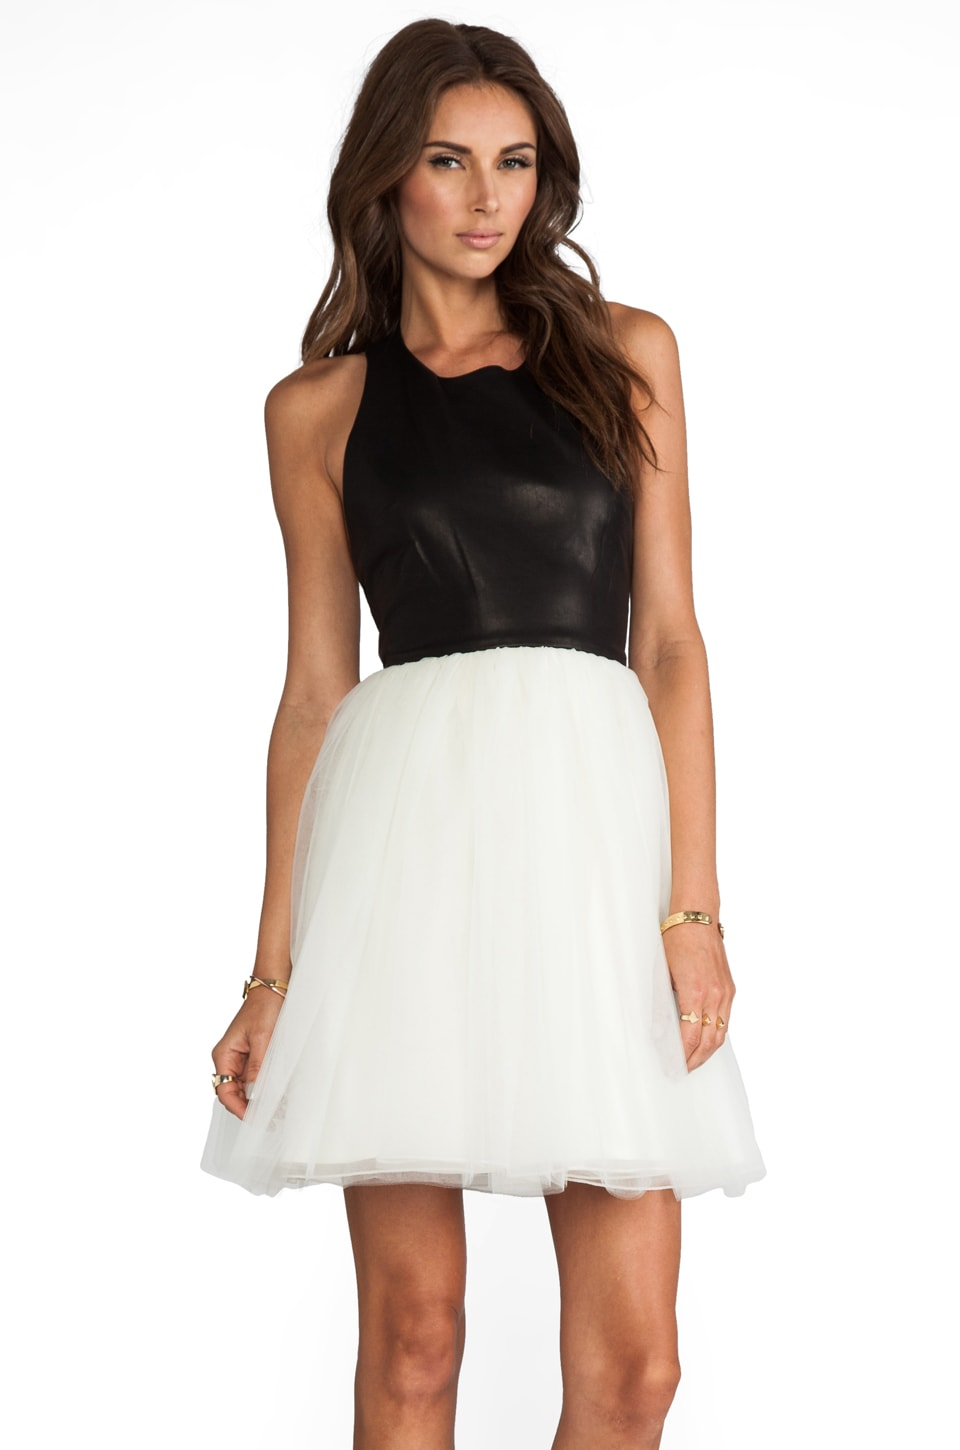 Alice + Olivia Ginnifer Leather Top T-Back Party Dress in Black